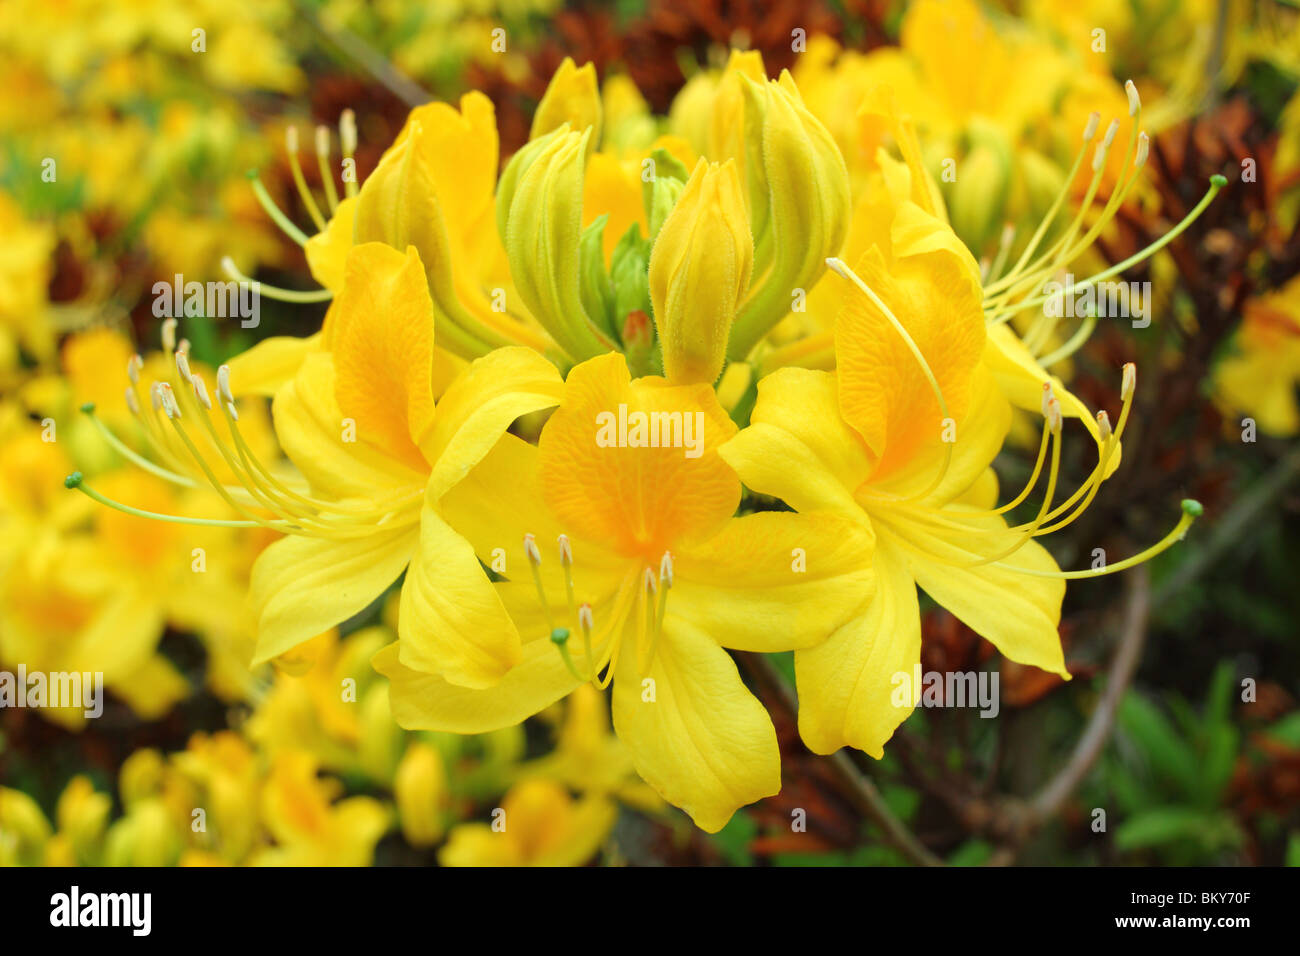 Yellow azalea flowers close up Rhododendron luteum - Stock Image